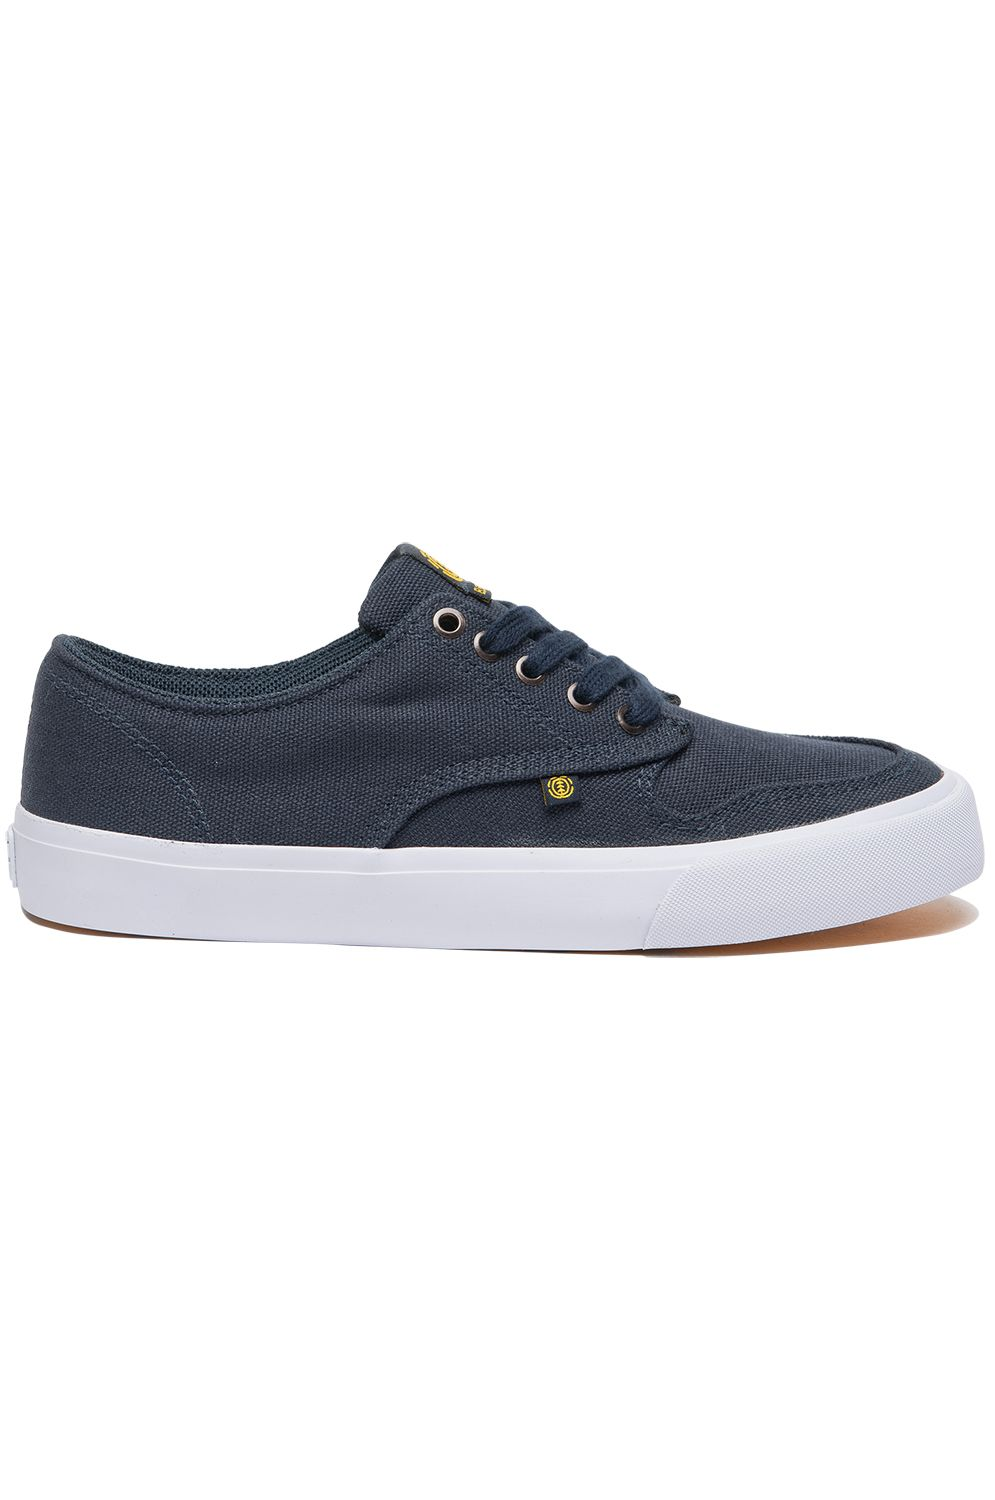 Element Shoes Y TOPAZ C3 Navy Yellow